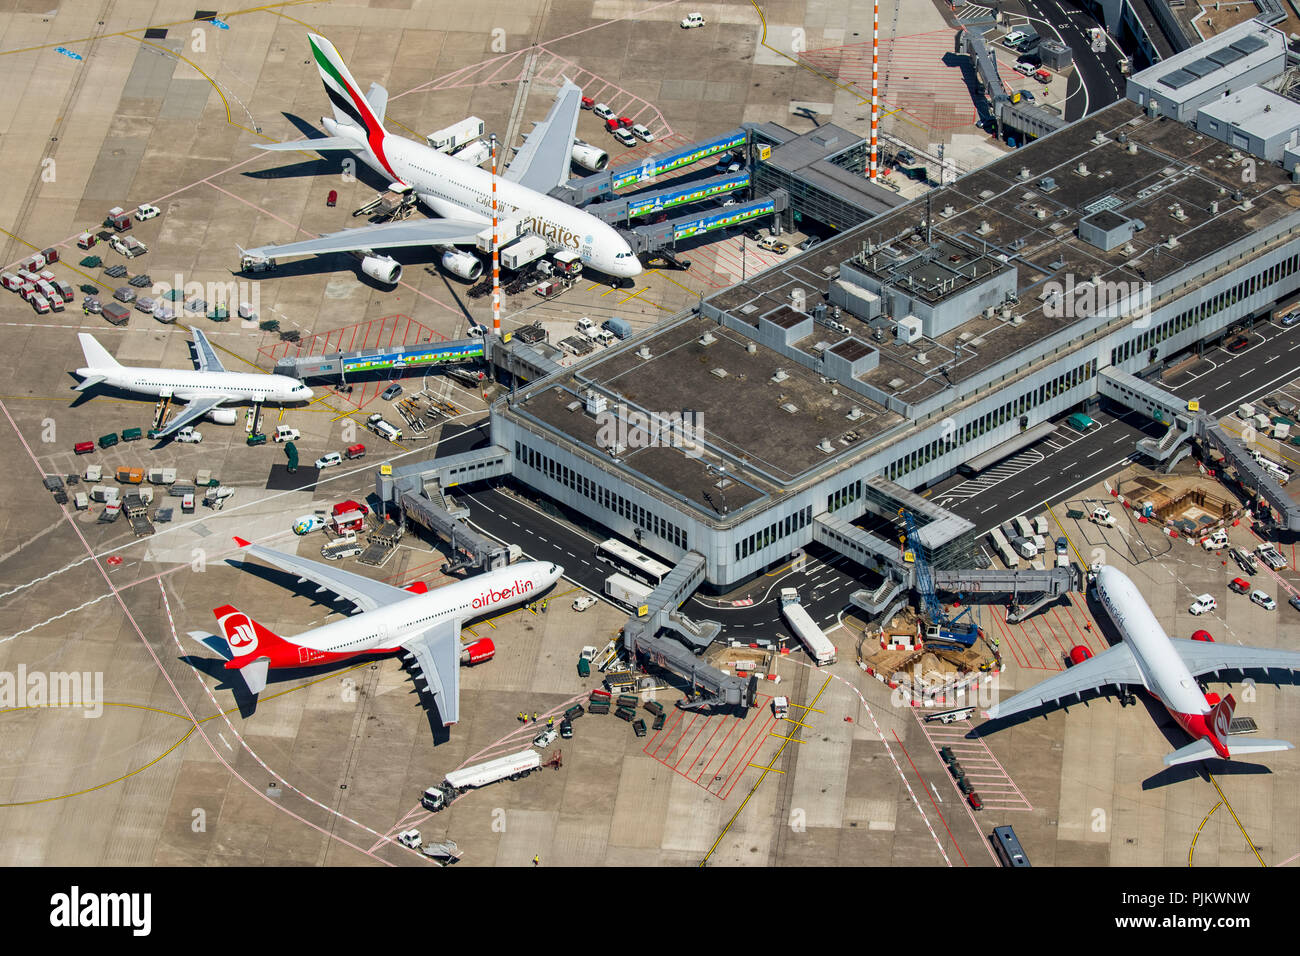 Dusseldorf Airport, Dusseldorf-Lohausen Airport, A6-EOB Emirates Airbus  A380-861, at the gate, Aircraft Finger, Dusseldorf, Rhineland, ...